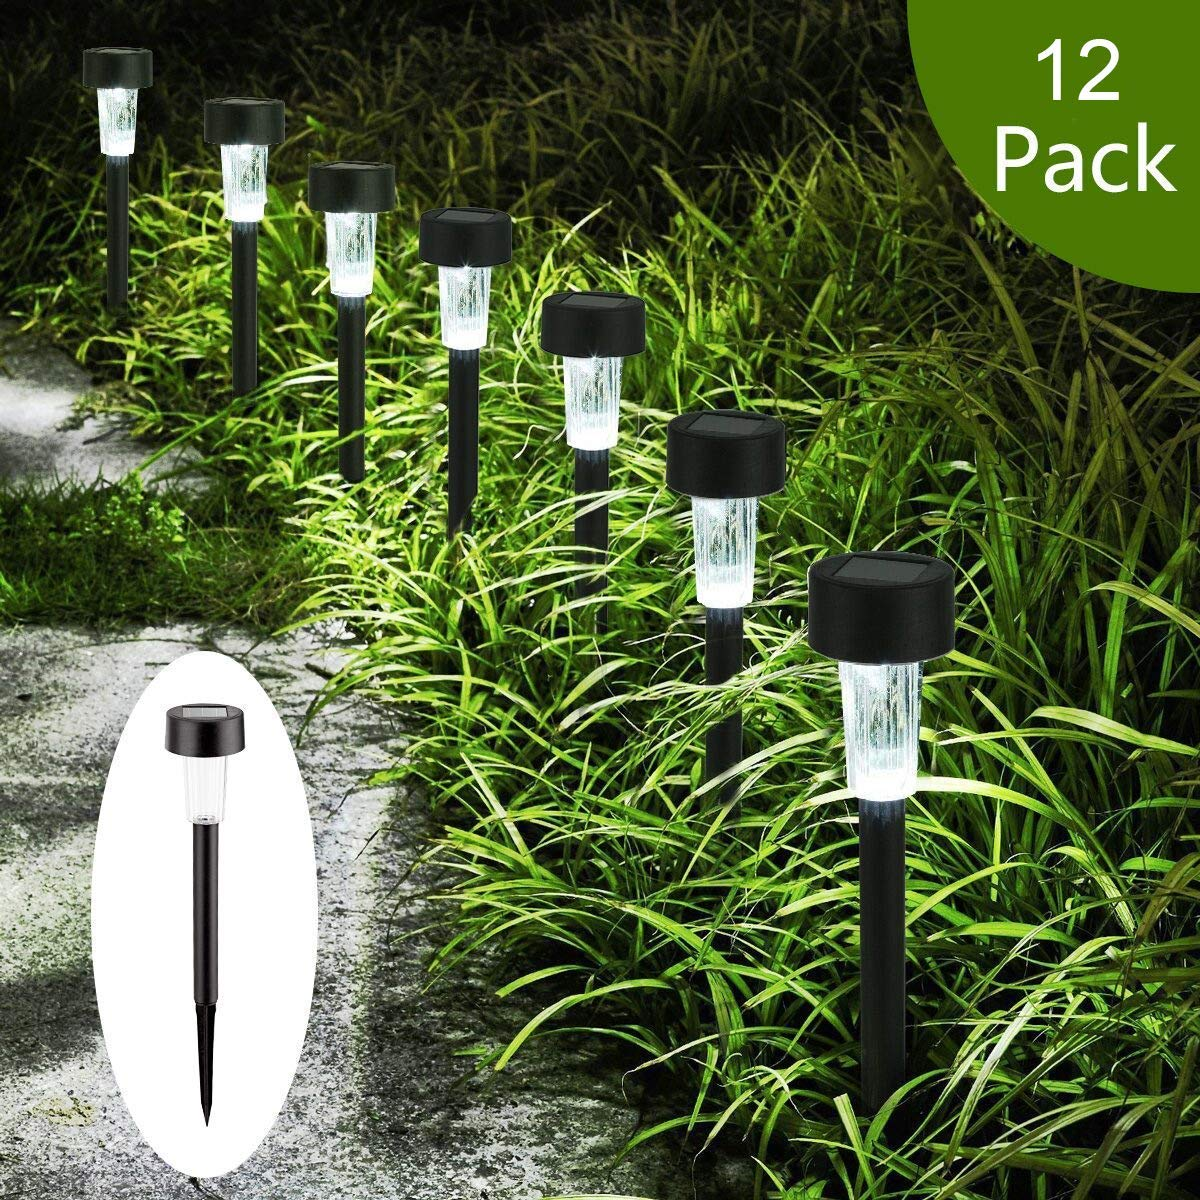 AMWGIMI Solar Pathway Lights - Solar Garden Lights Outdoor Solar Landscape Lights for Lawn, Patio, Yard, Walkway, Driveway Decorations (12 Pack) by AMWGIMI